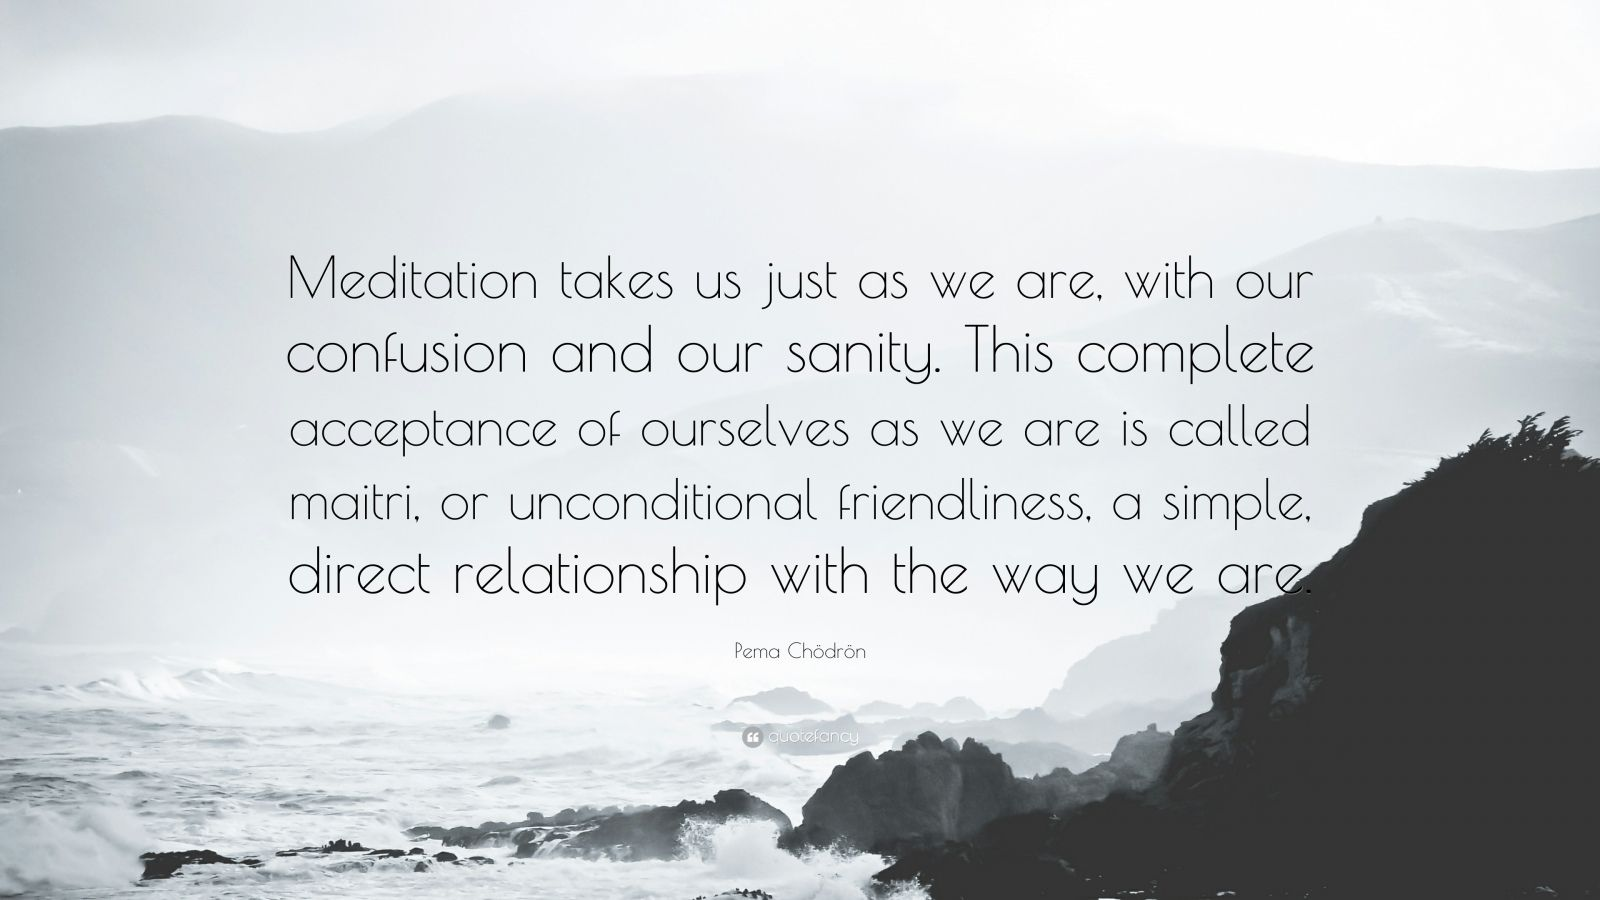 """Pema Chödrön Quote: """"Meditation takes us just as we are, with our confusion and our sanity. This complete acceptance of ourselves as we are is called maitri, or unconditional friendliness, a simple, direct relationship with the way we are."""""""